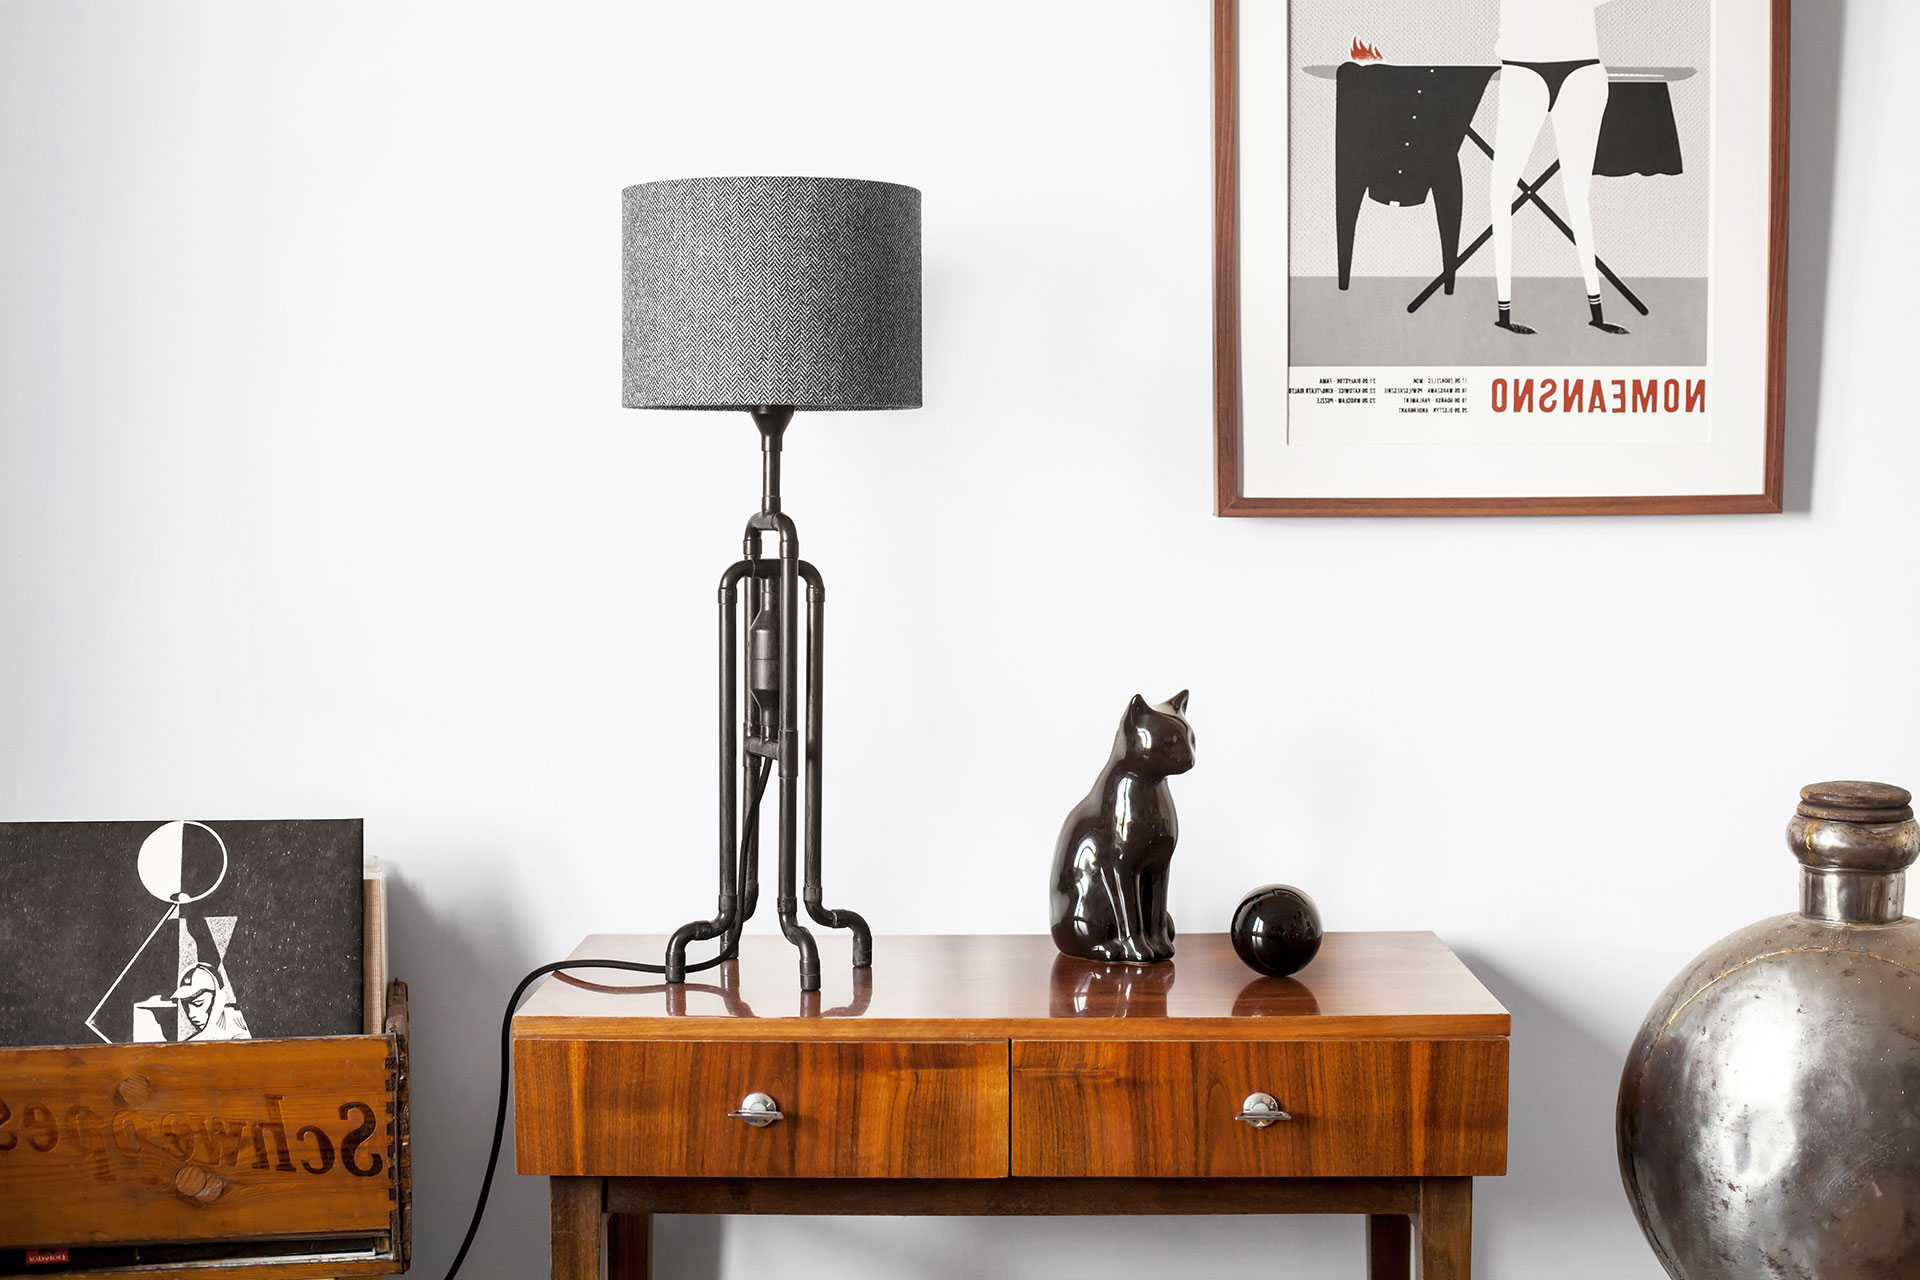 Industrial design table lamp in natural black patina with custom tweed shade in mid-century modern apartment